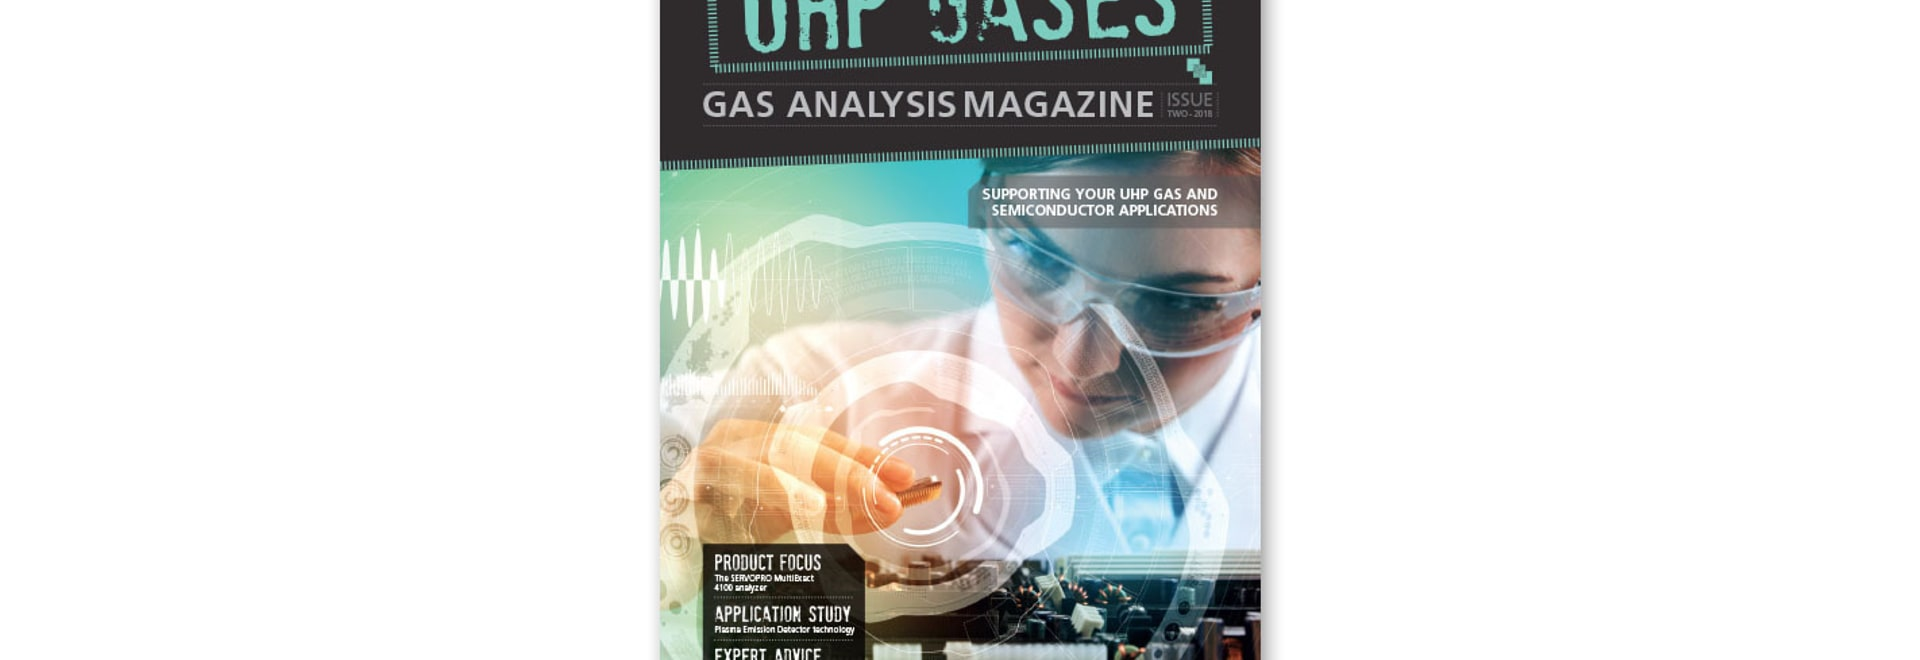 DOWNLOAD THE NEW ISSUE OF OUR UHP GASES MAGAZINE TODAY!